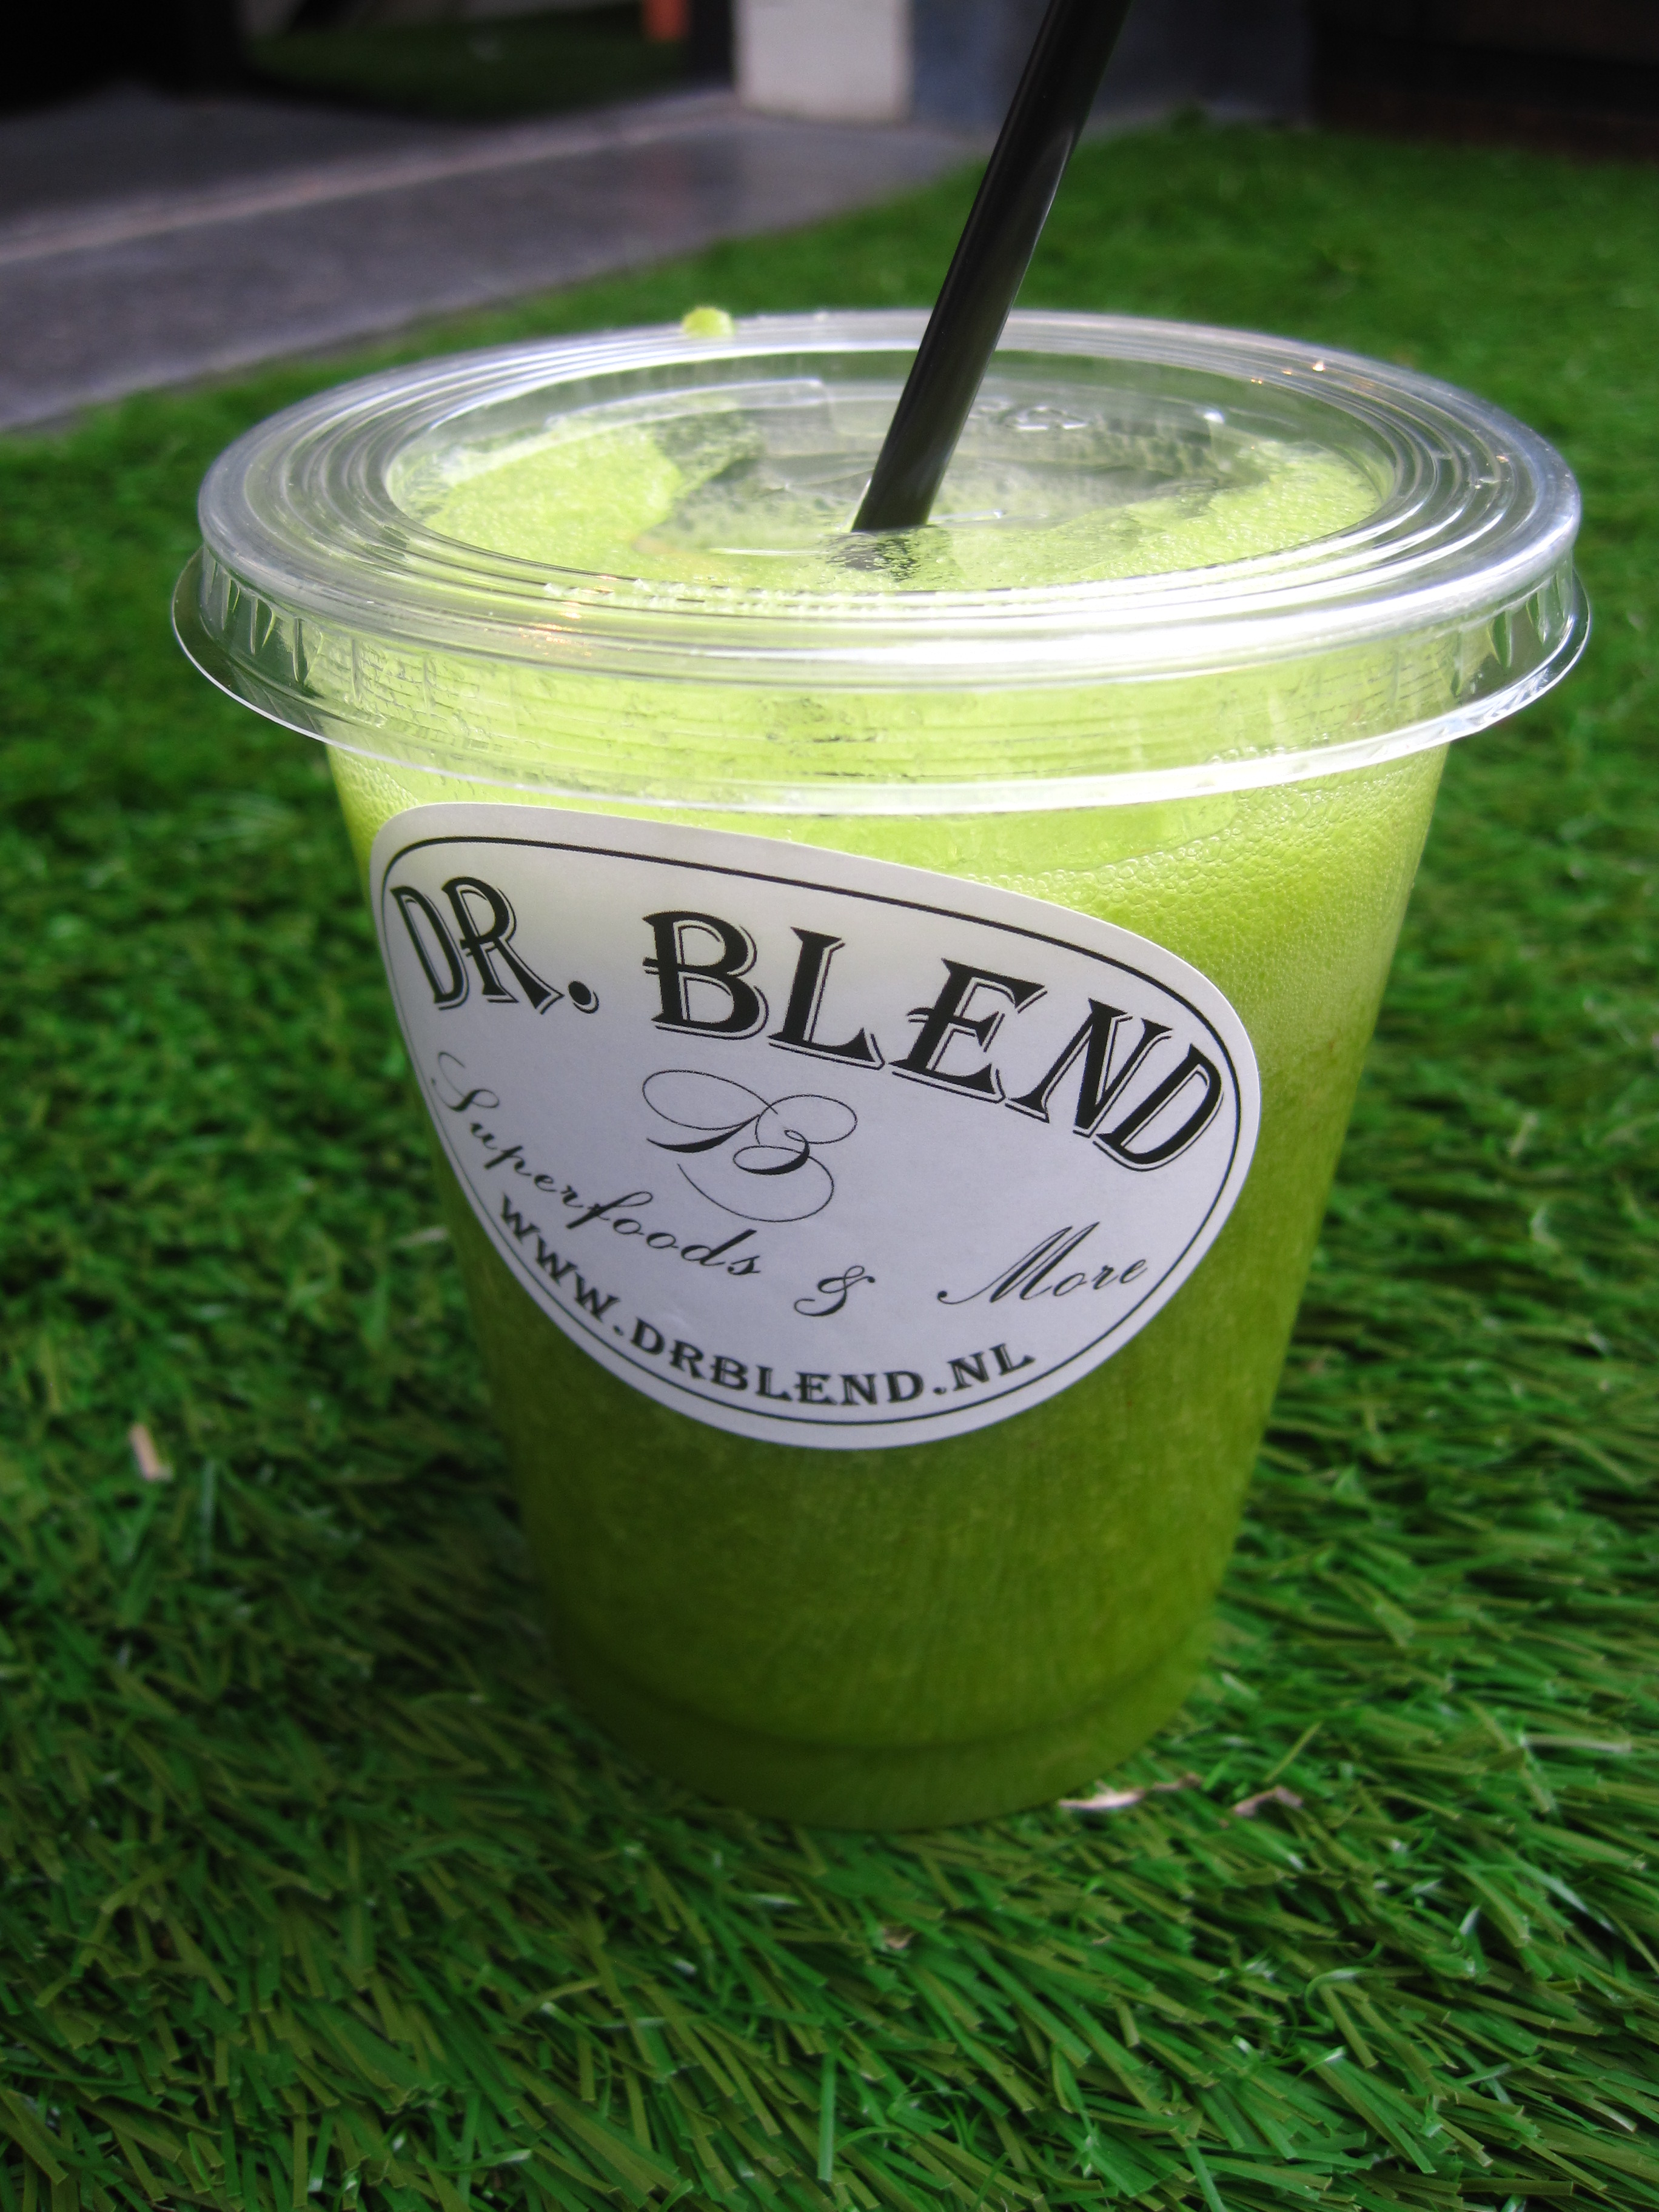 Do you love freshly squeezed fruit juice? Then pop by one of our favorite Amsterdam juice bars! Dr Blend Superfoods Juice Bar awesomeamsterdam.com